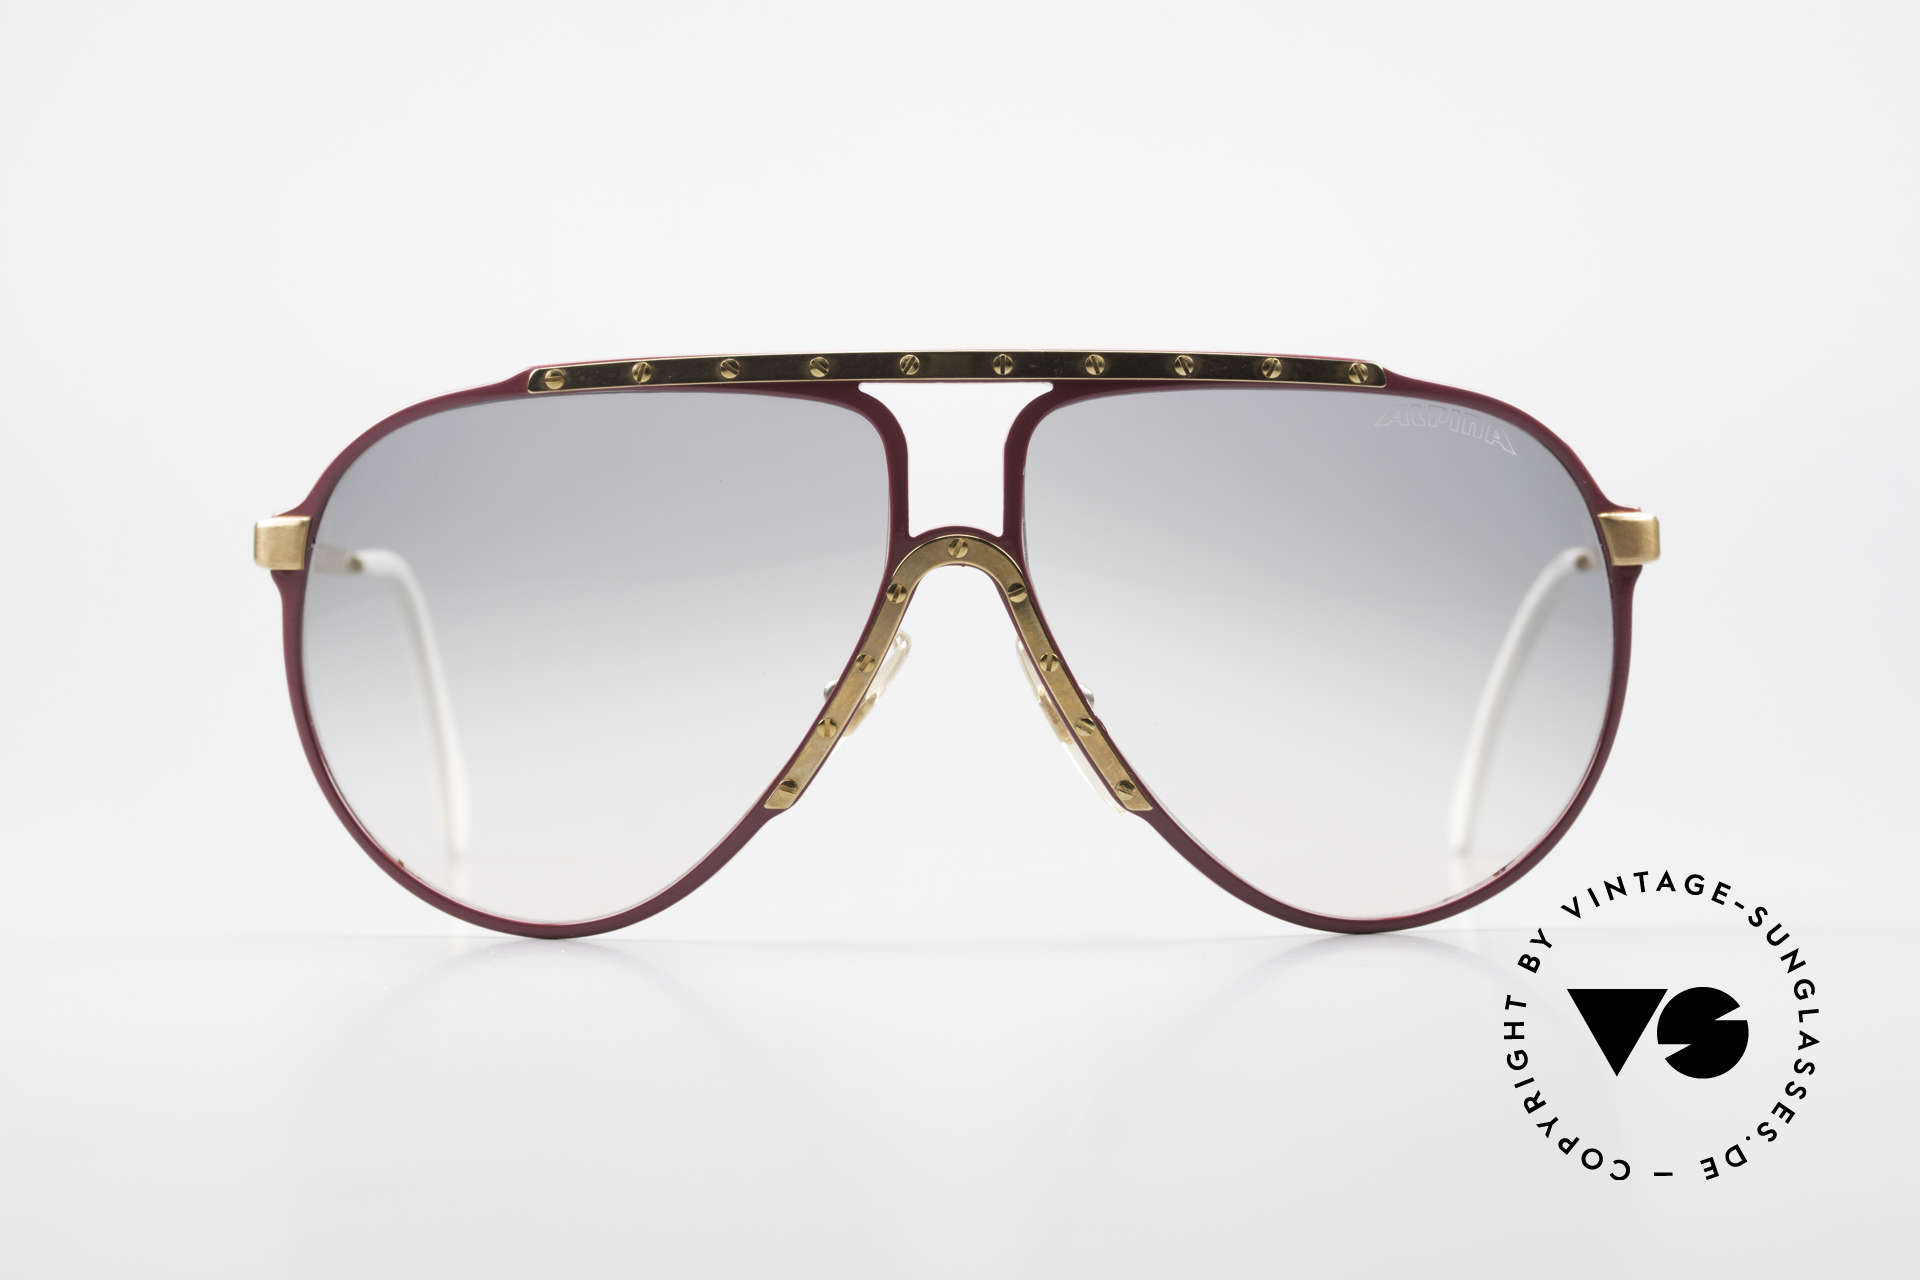 Alpina M1 Iconic Vintage Sunglasses 80s, iconic vintage 80's sunglasses from West Germany, Made for Women